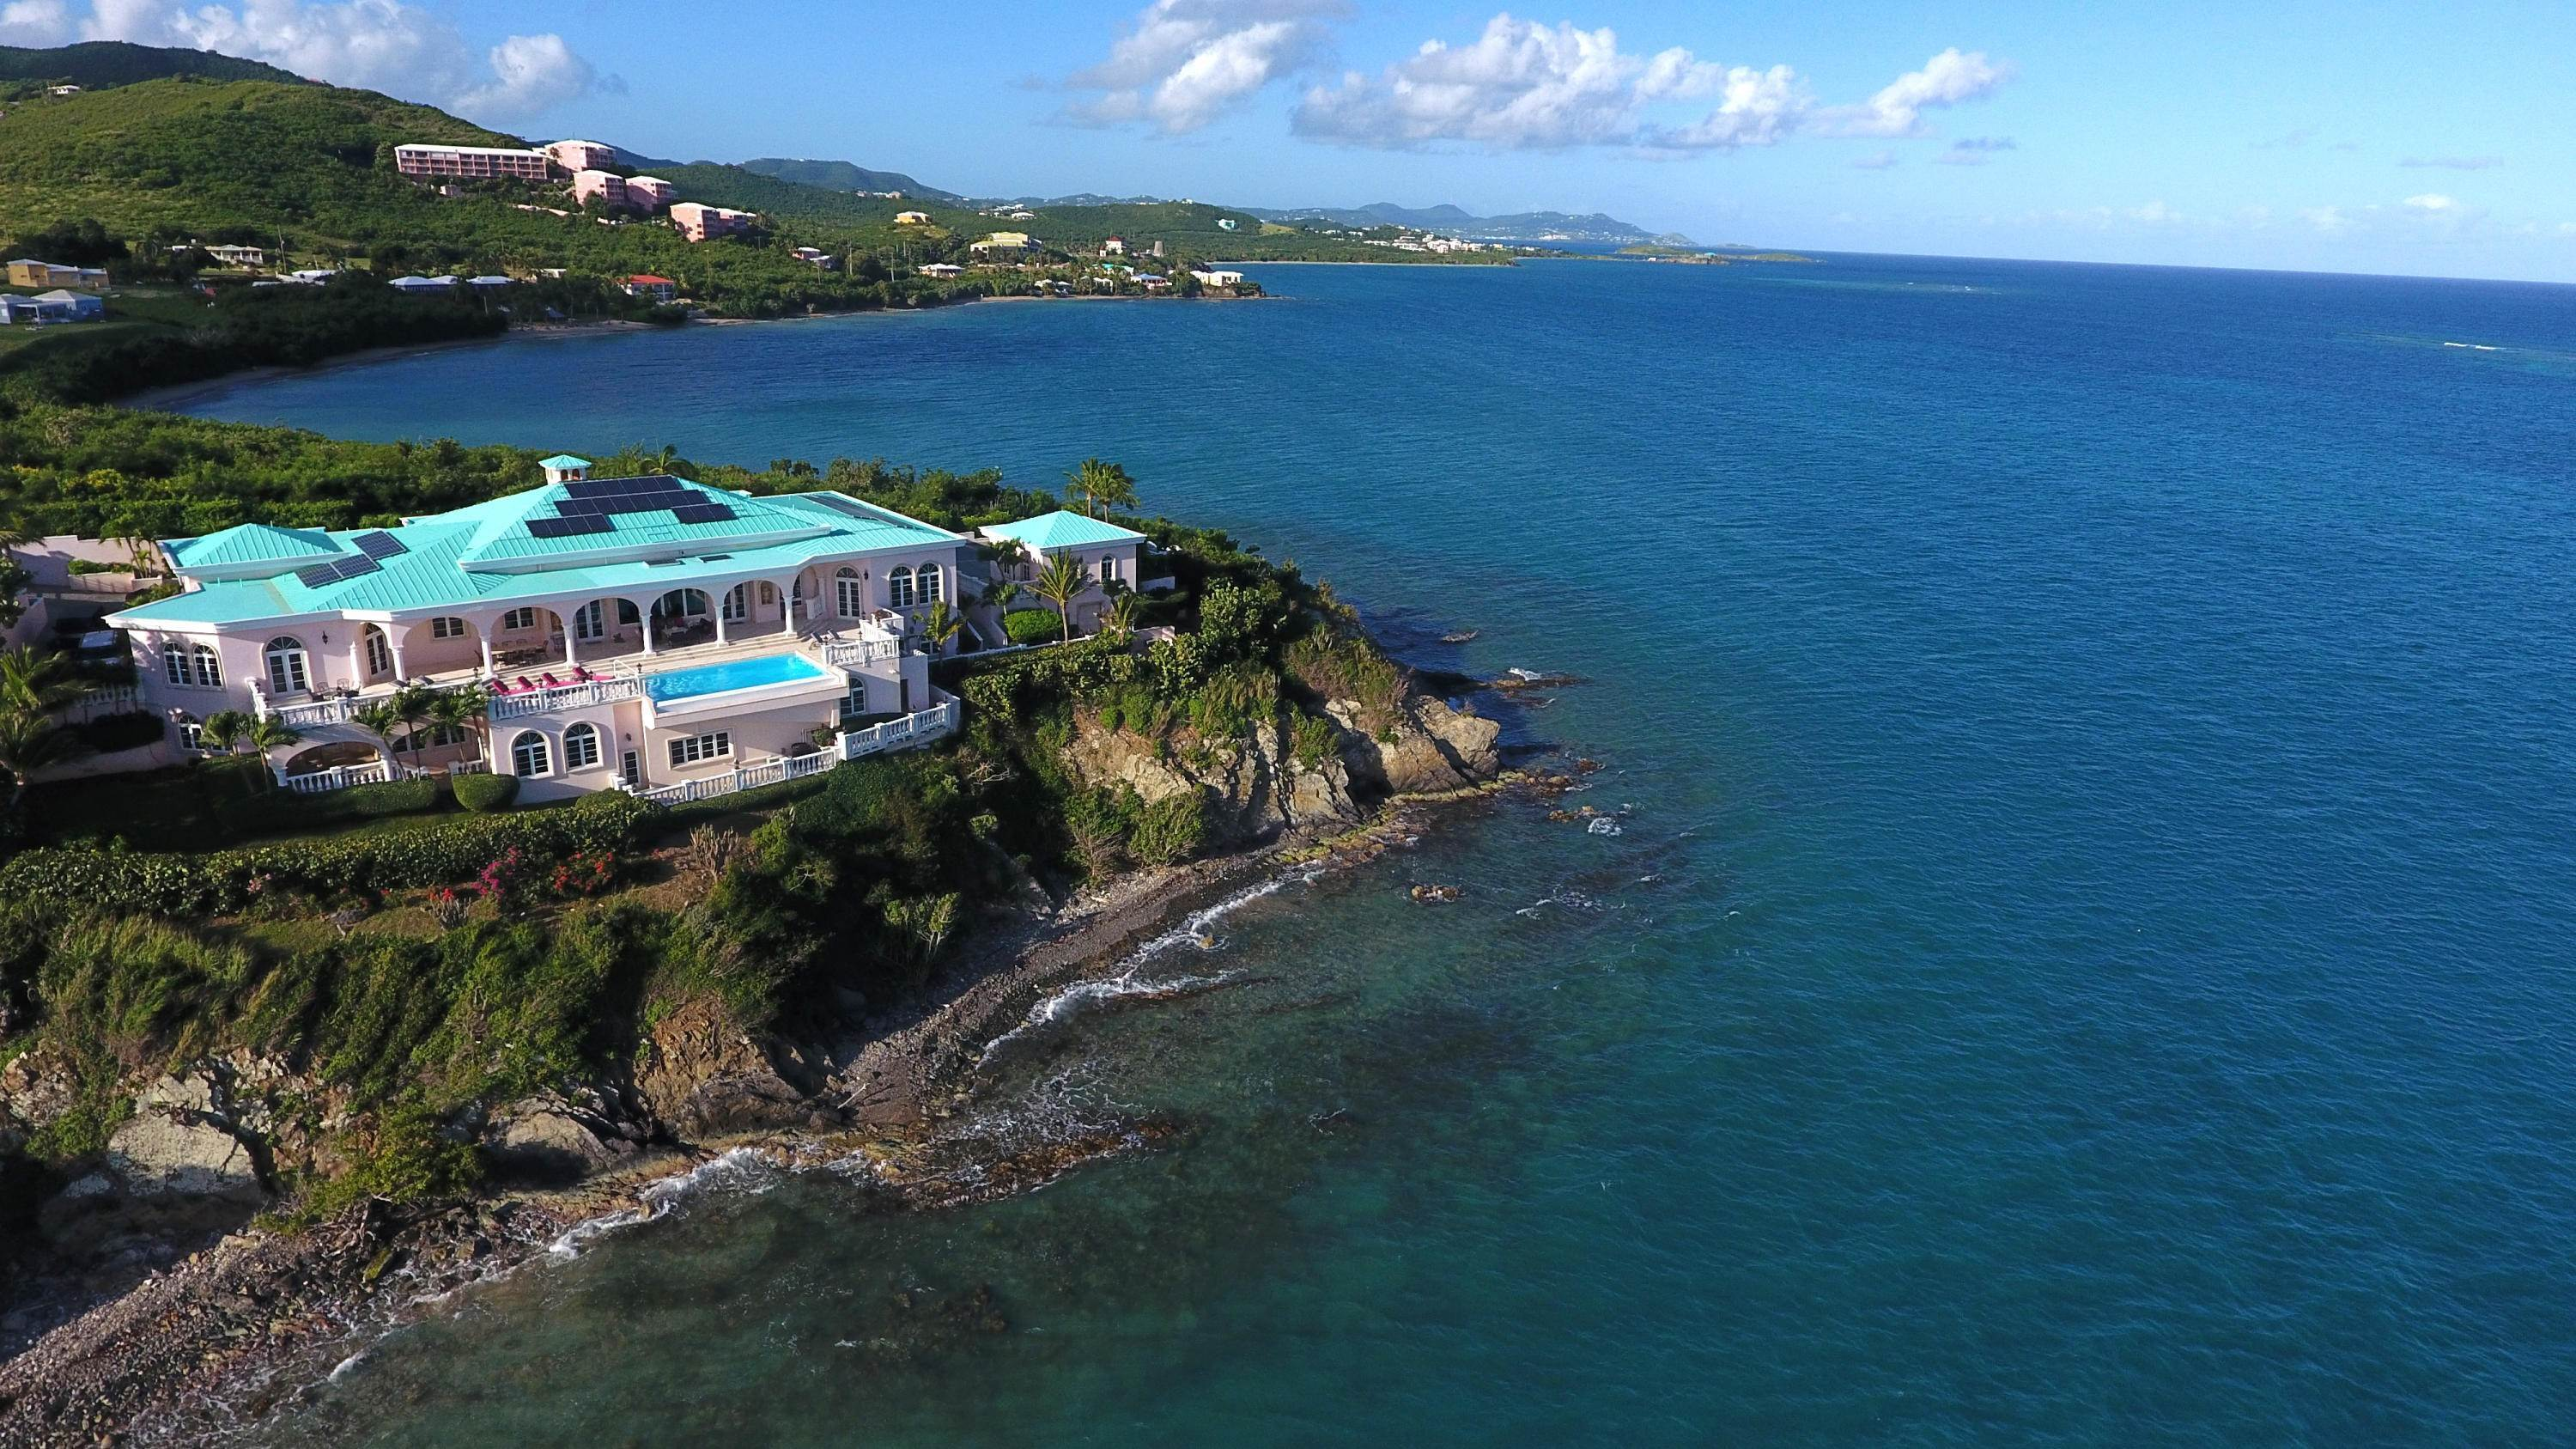 Single Family Homes for Sale at 23 Solitude EB St Croix, Virgin Islands 00820 United States Virgin Islands